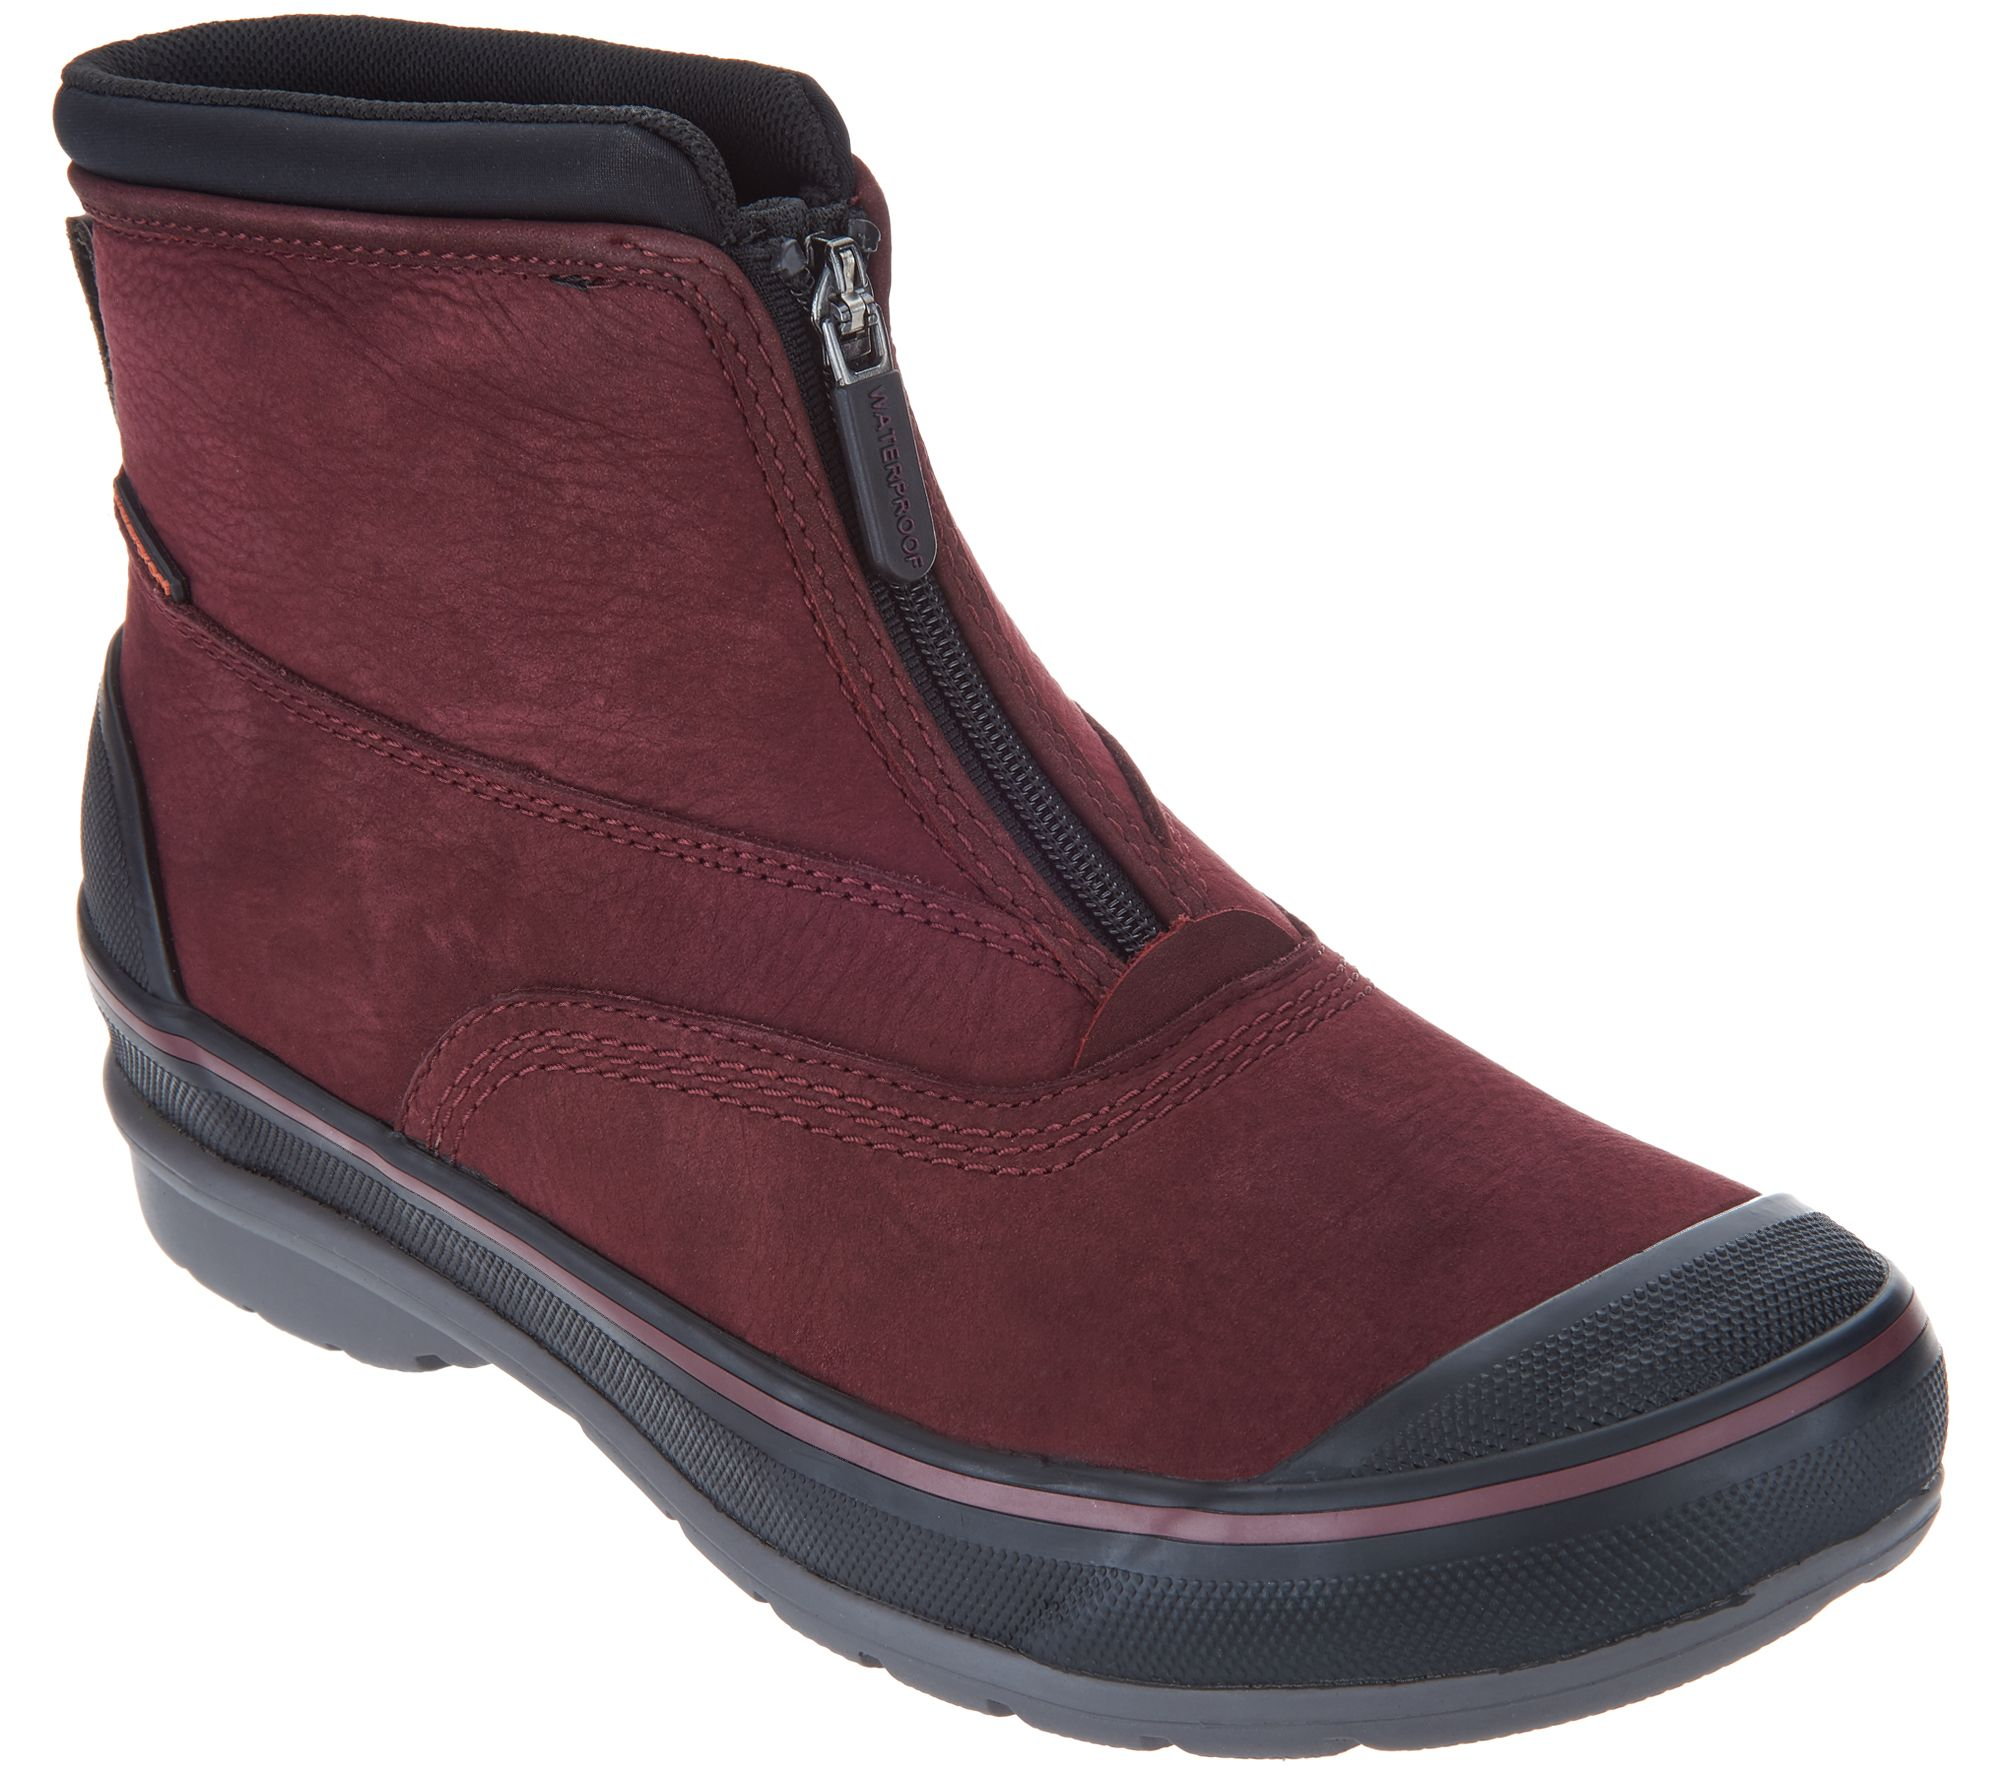 Clarks Waterproof Leather Zip Front Boots - Muckers Hike footaction cheap price outlet store get to buy cheap online choice for sale pre order online Vv0Upy